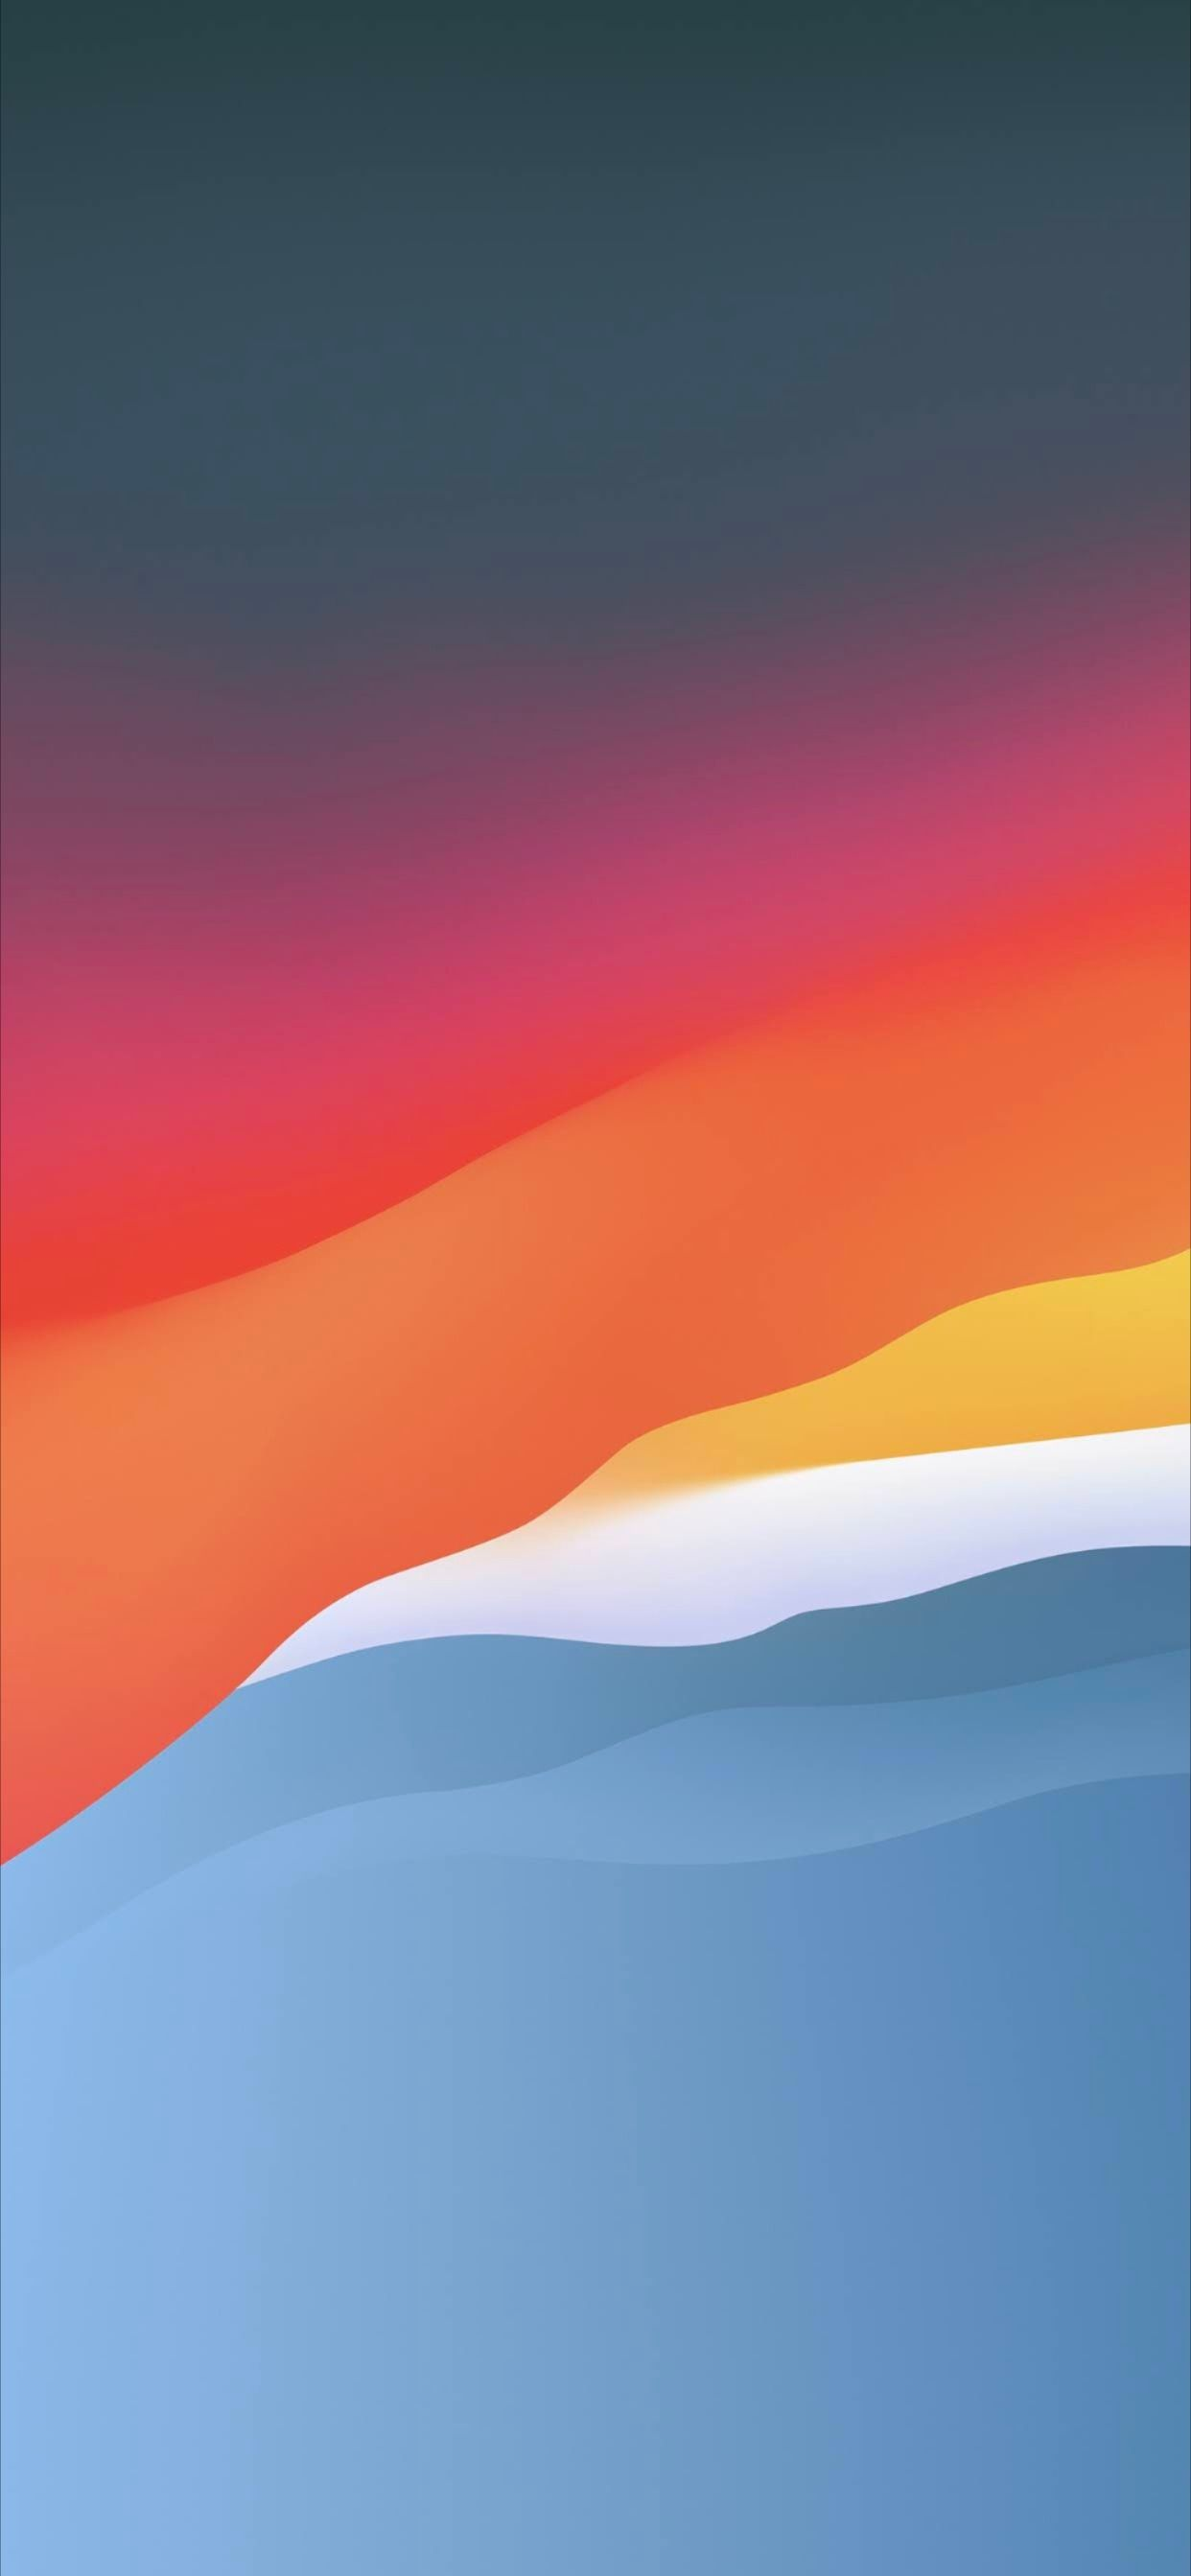 Samsung Galaxy S20 Ultra Wallpaper For Punch Hole Mkbhd Wallpapers Samsung Galaxy Wallpaper Oneplus Wallpapers